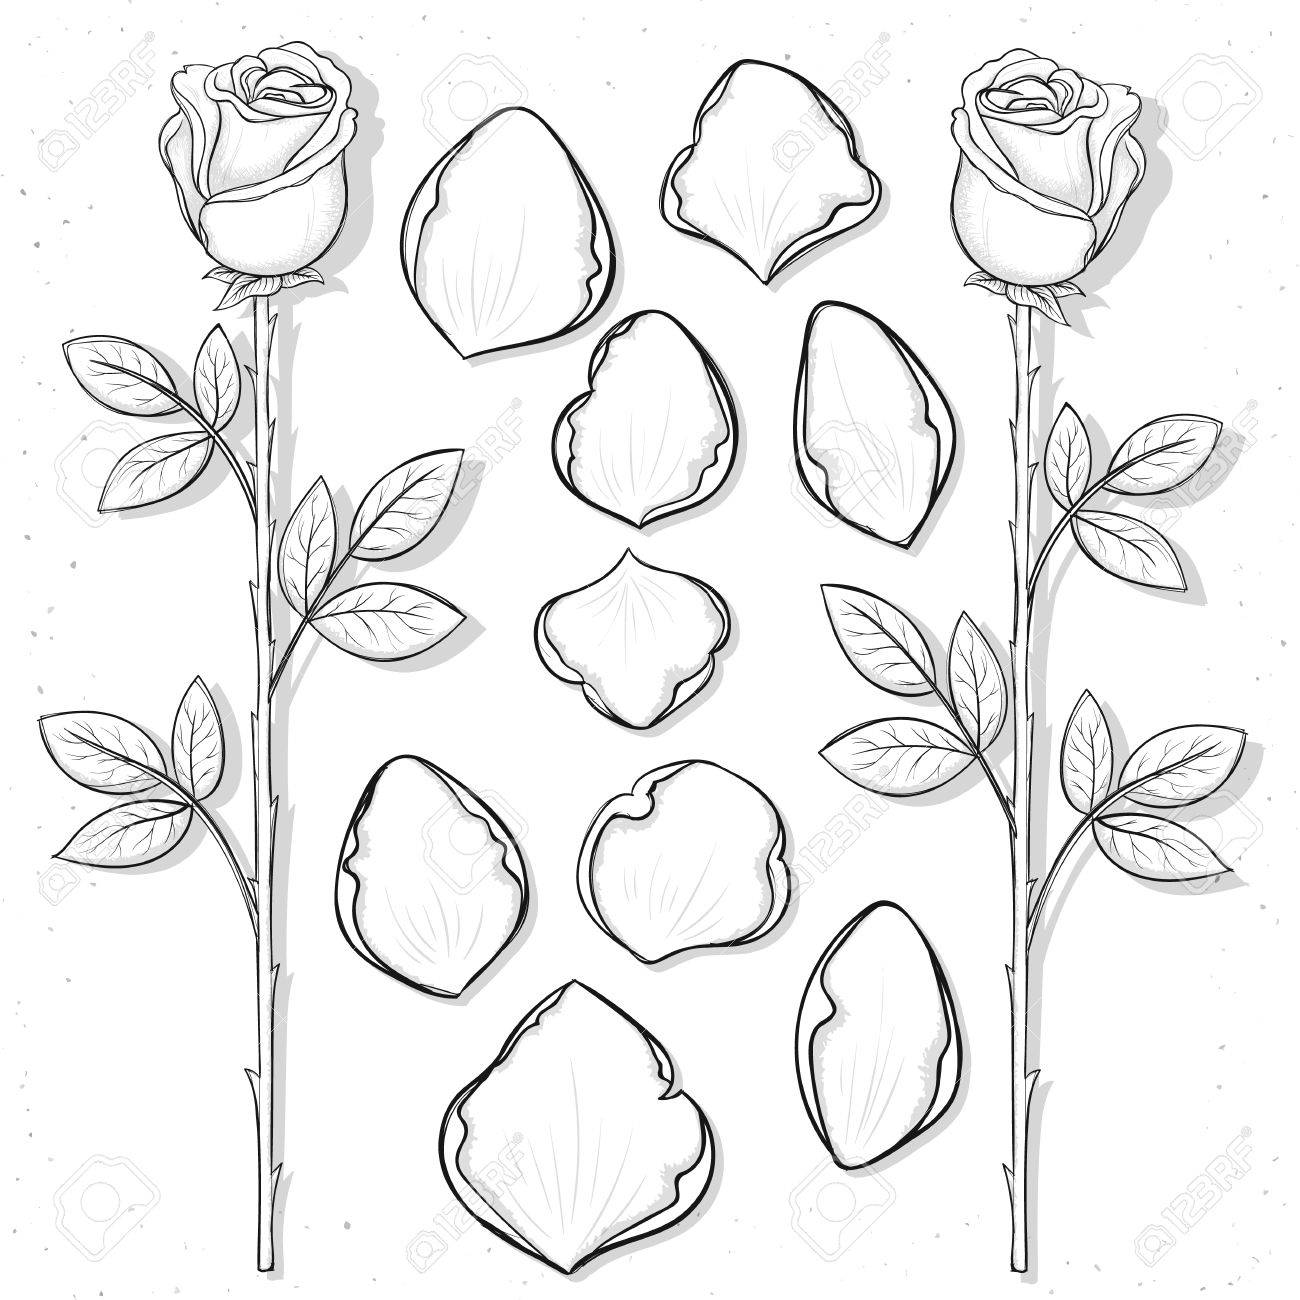 1300x1300 Isolated Rose And Petals Handmade In Sketch Style. Sketch